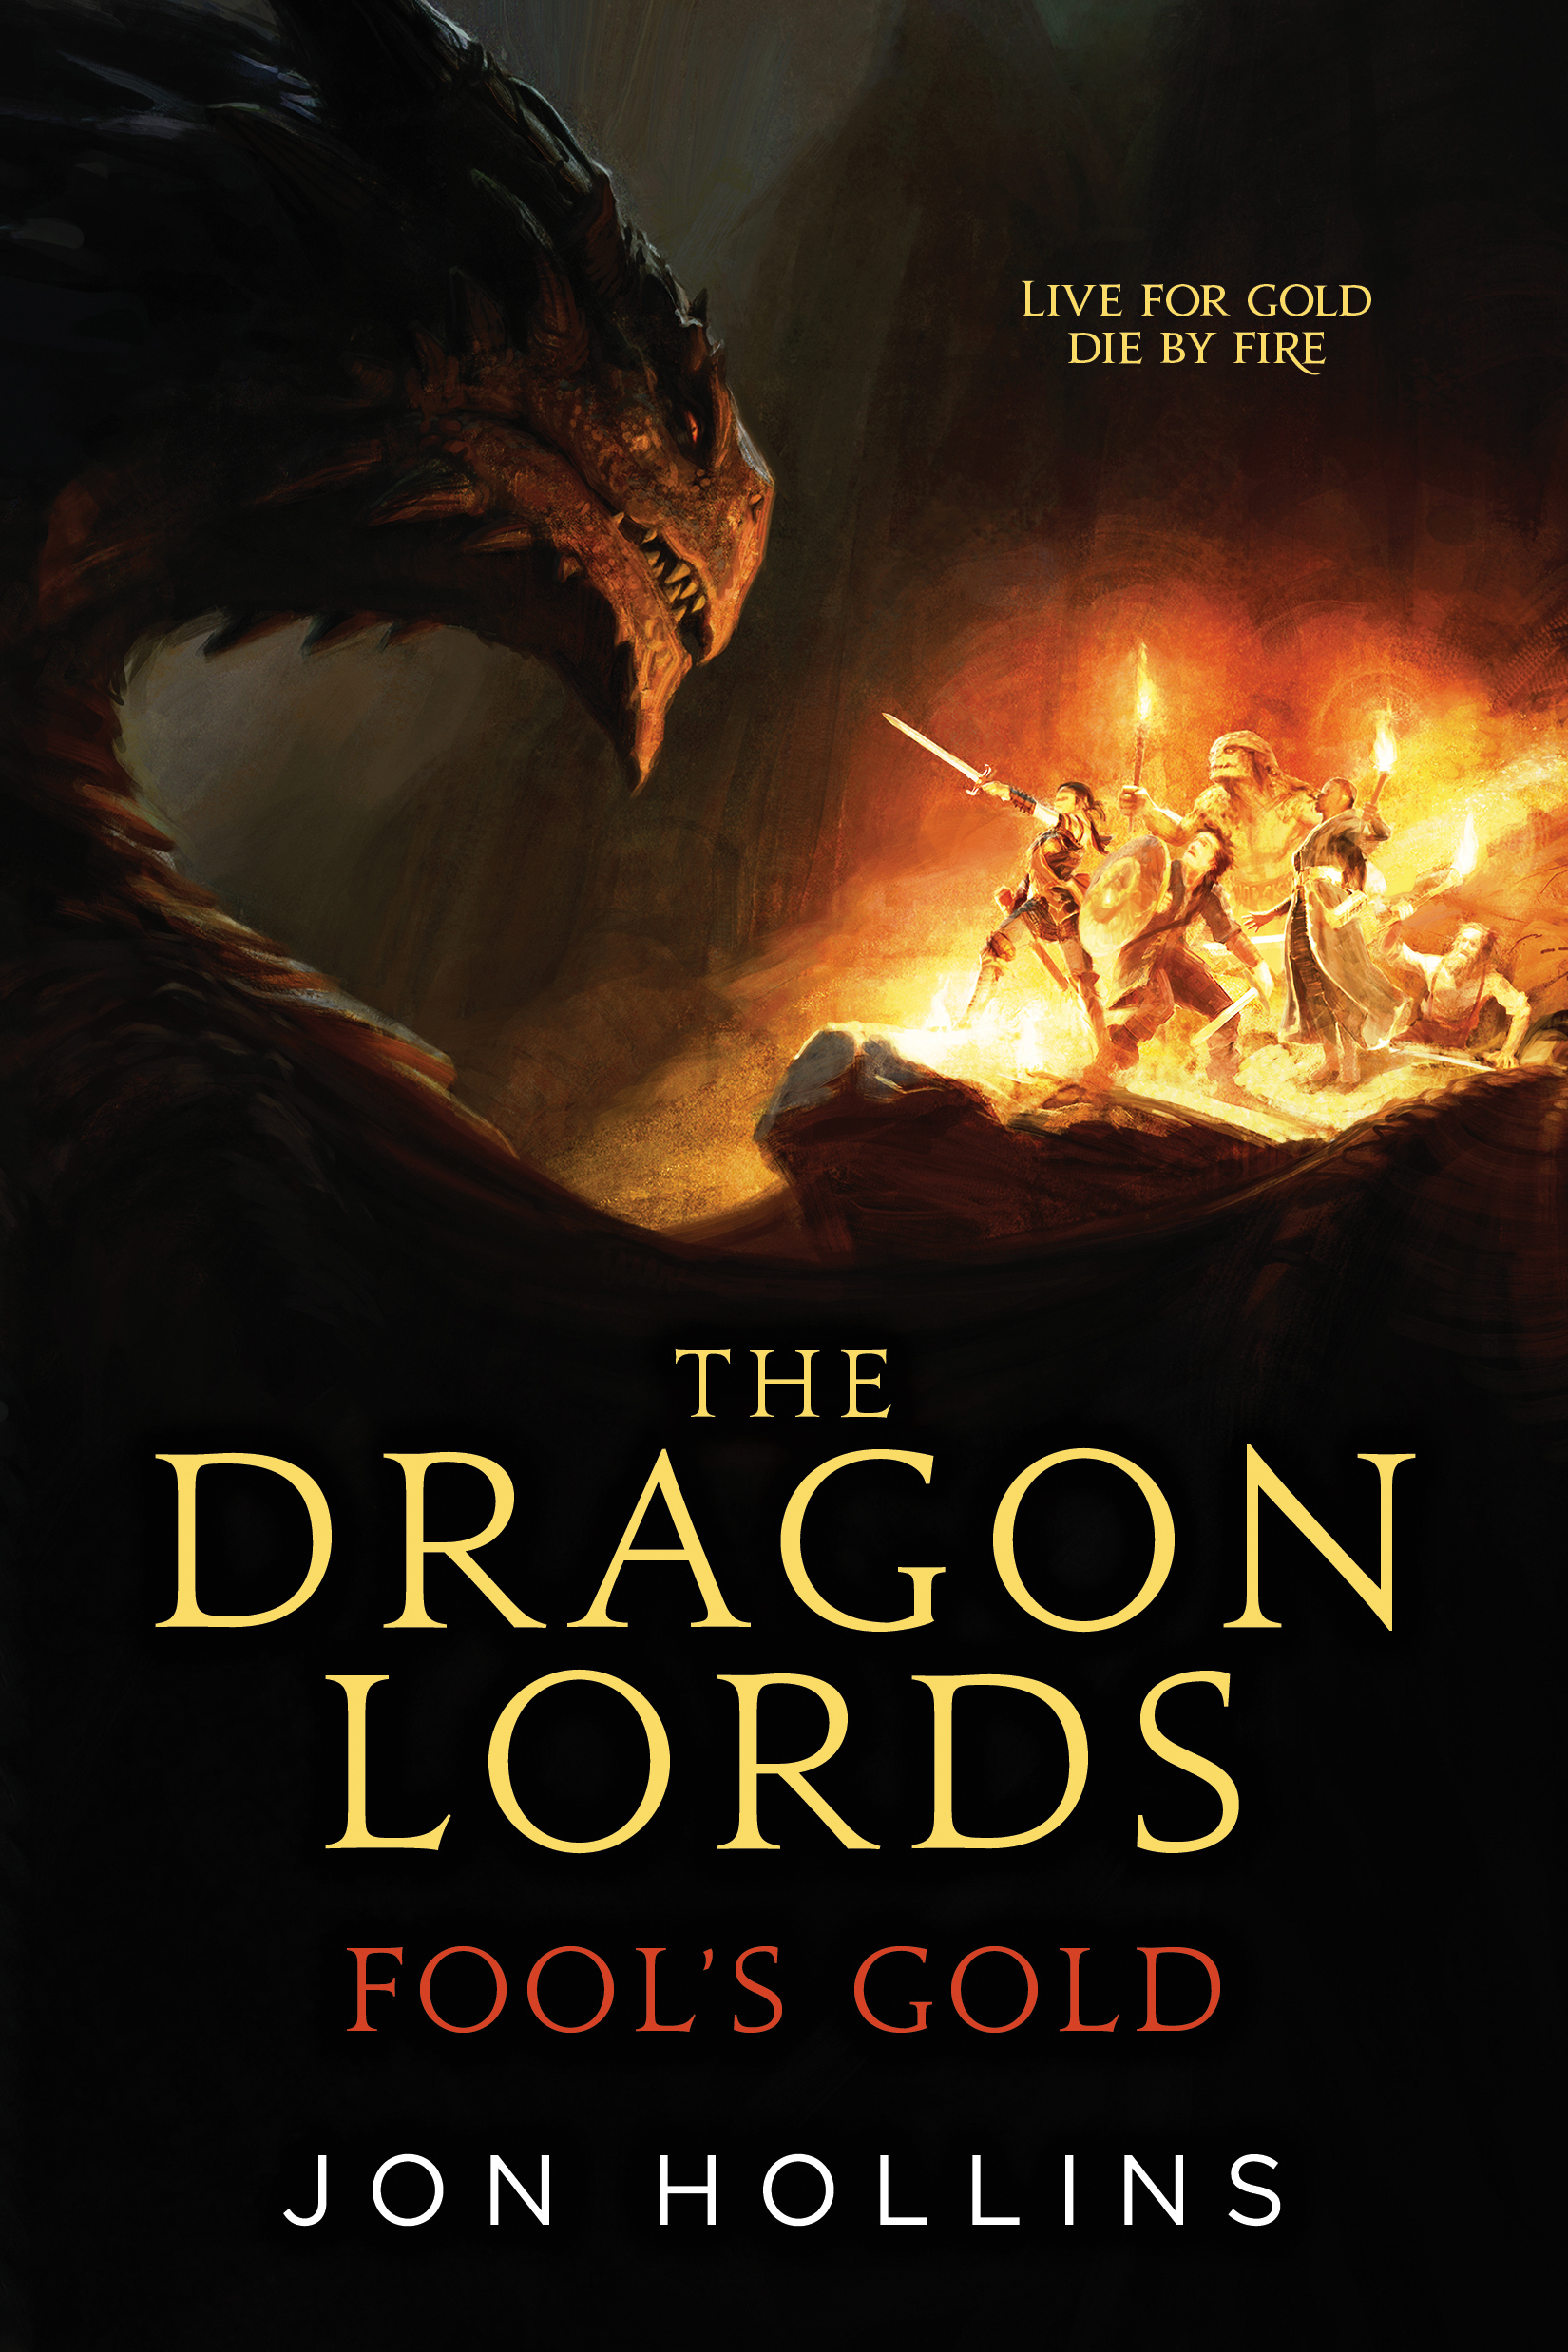 THE DRAGON LORDS: FOOLS GOLD by Jon Hollins